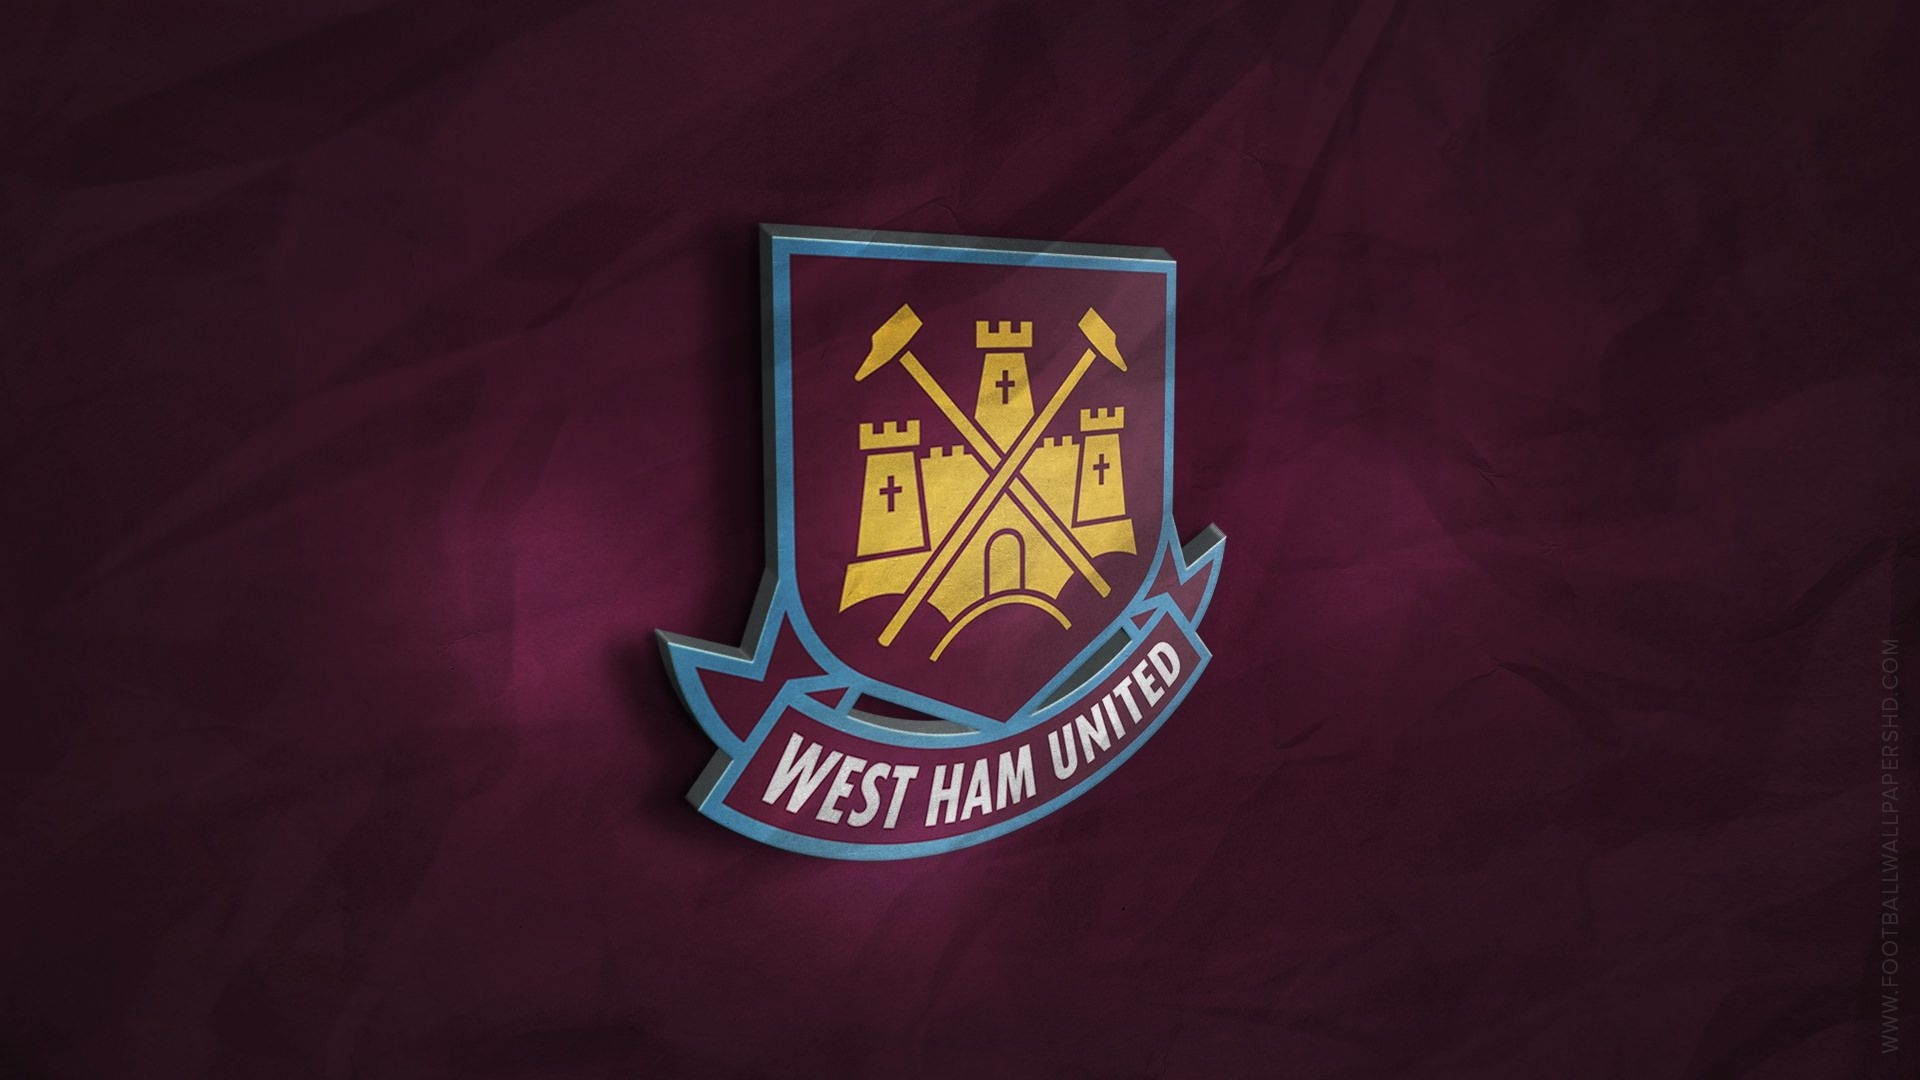 west ham united 3d logo wallpaper | influence | pinterest | west ham